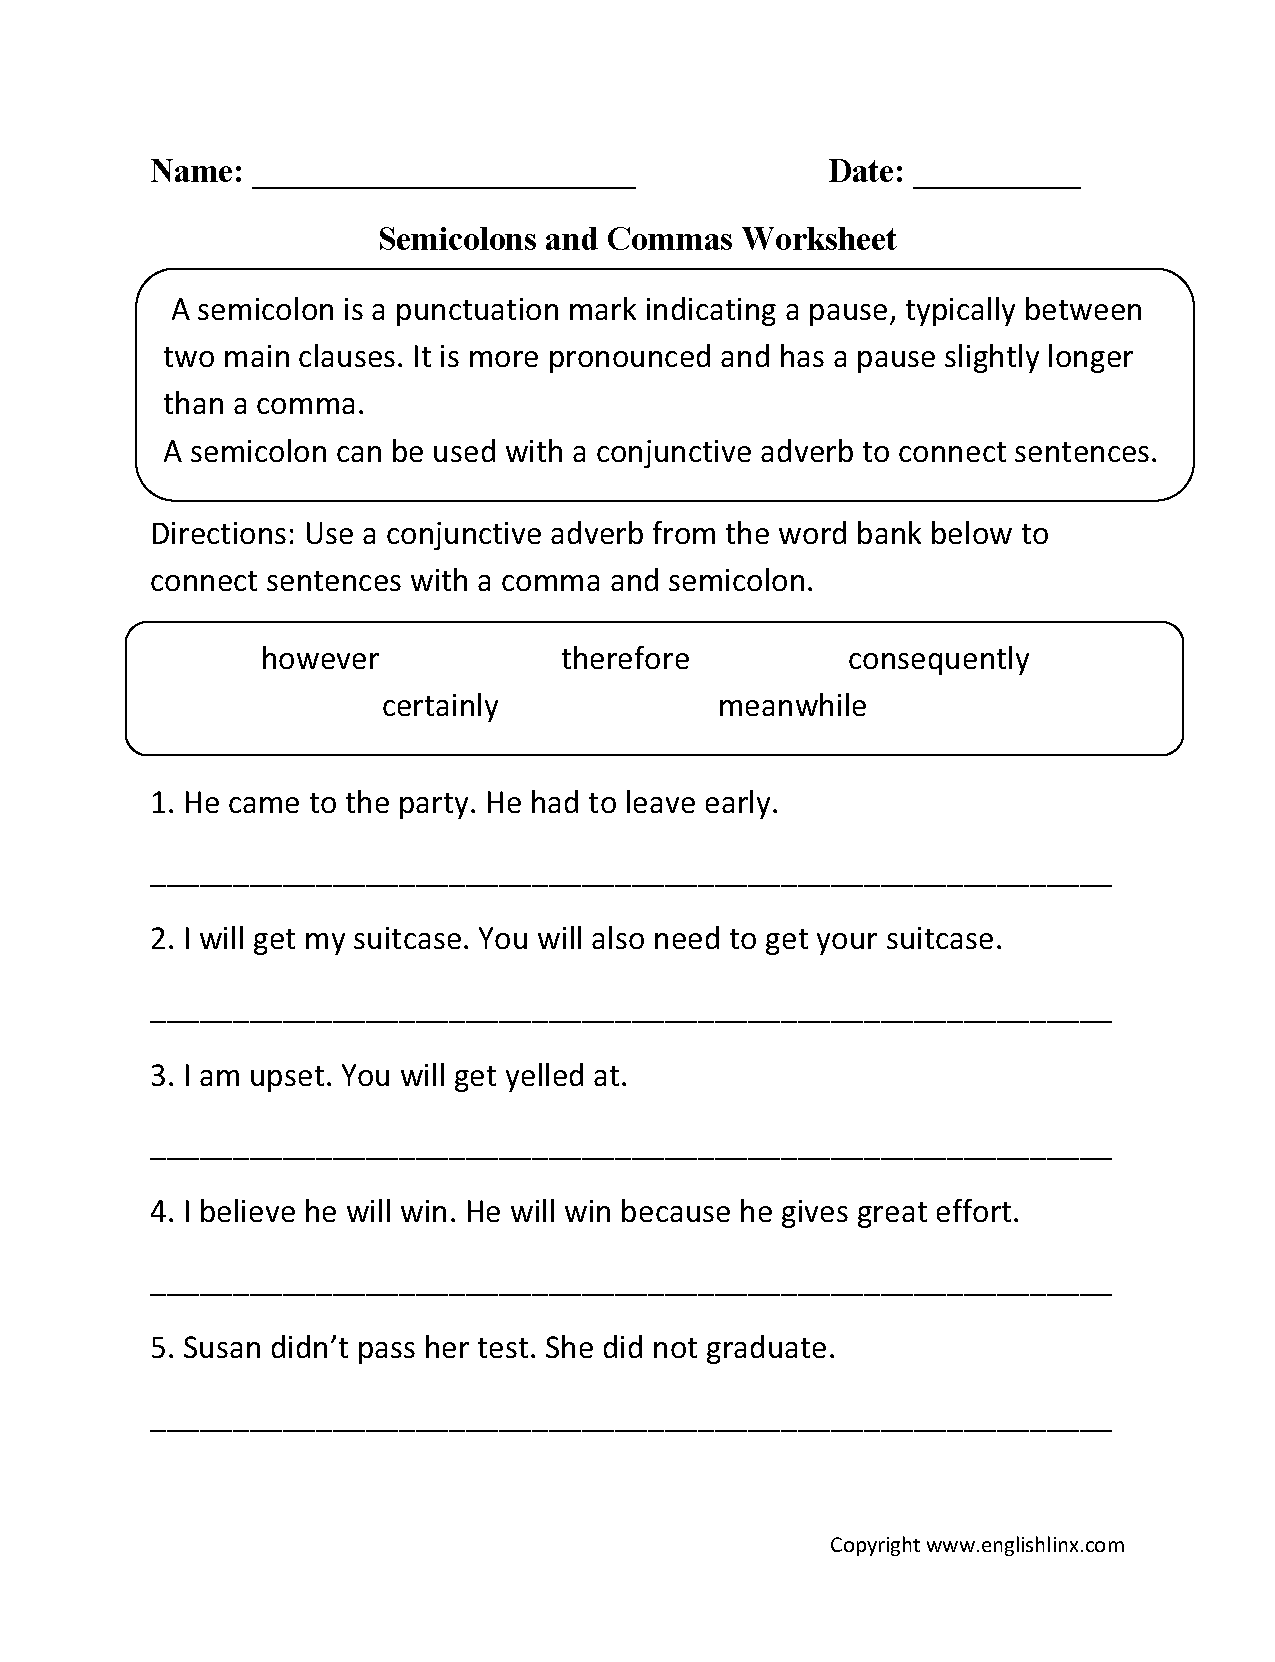 worksheet Conjunctive Adverbs Worksheets punctuation worksheets semicolon worksheet